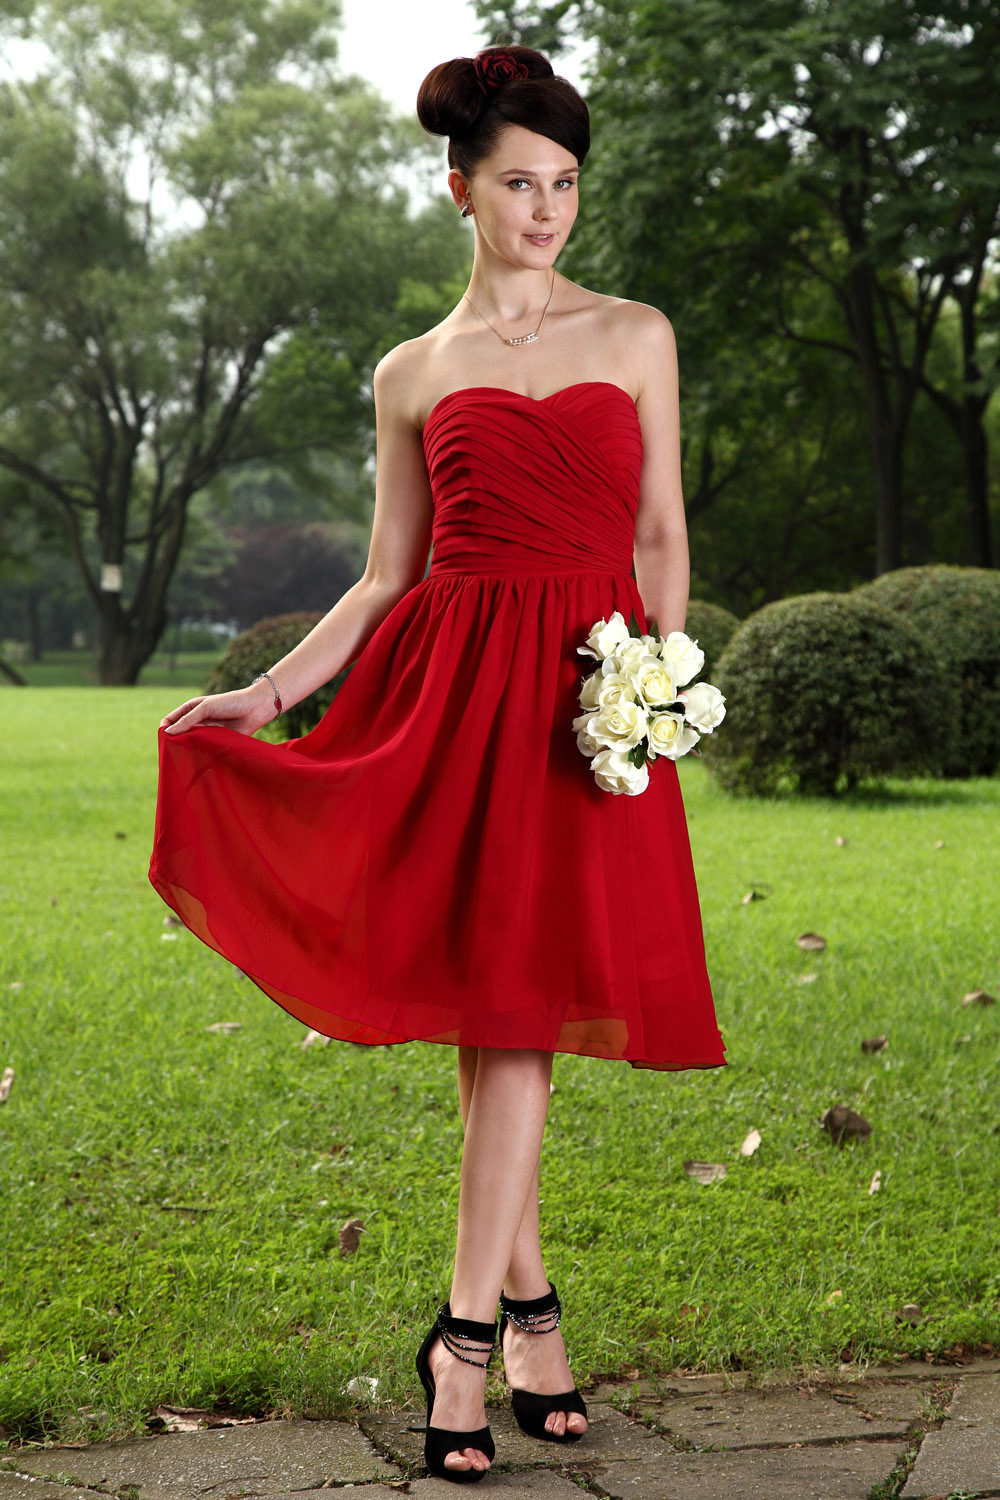 Princess Sweetheart Knee-length Taffeta Tulle Graduation Dress